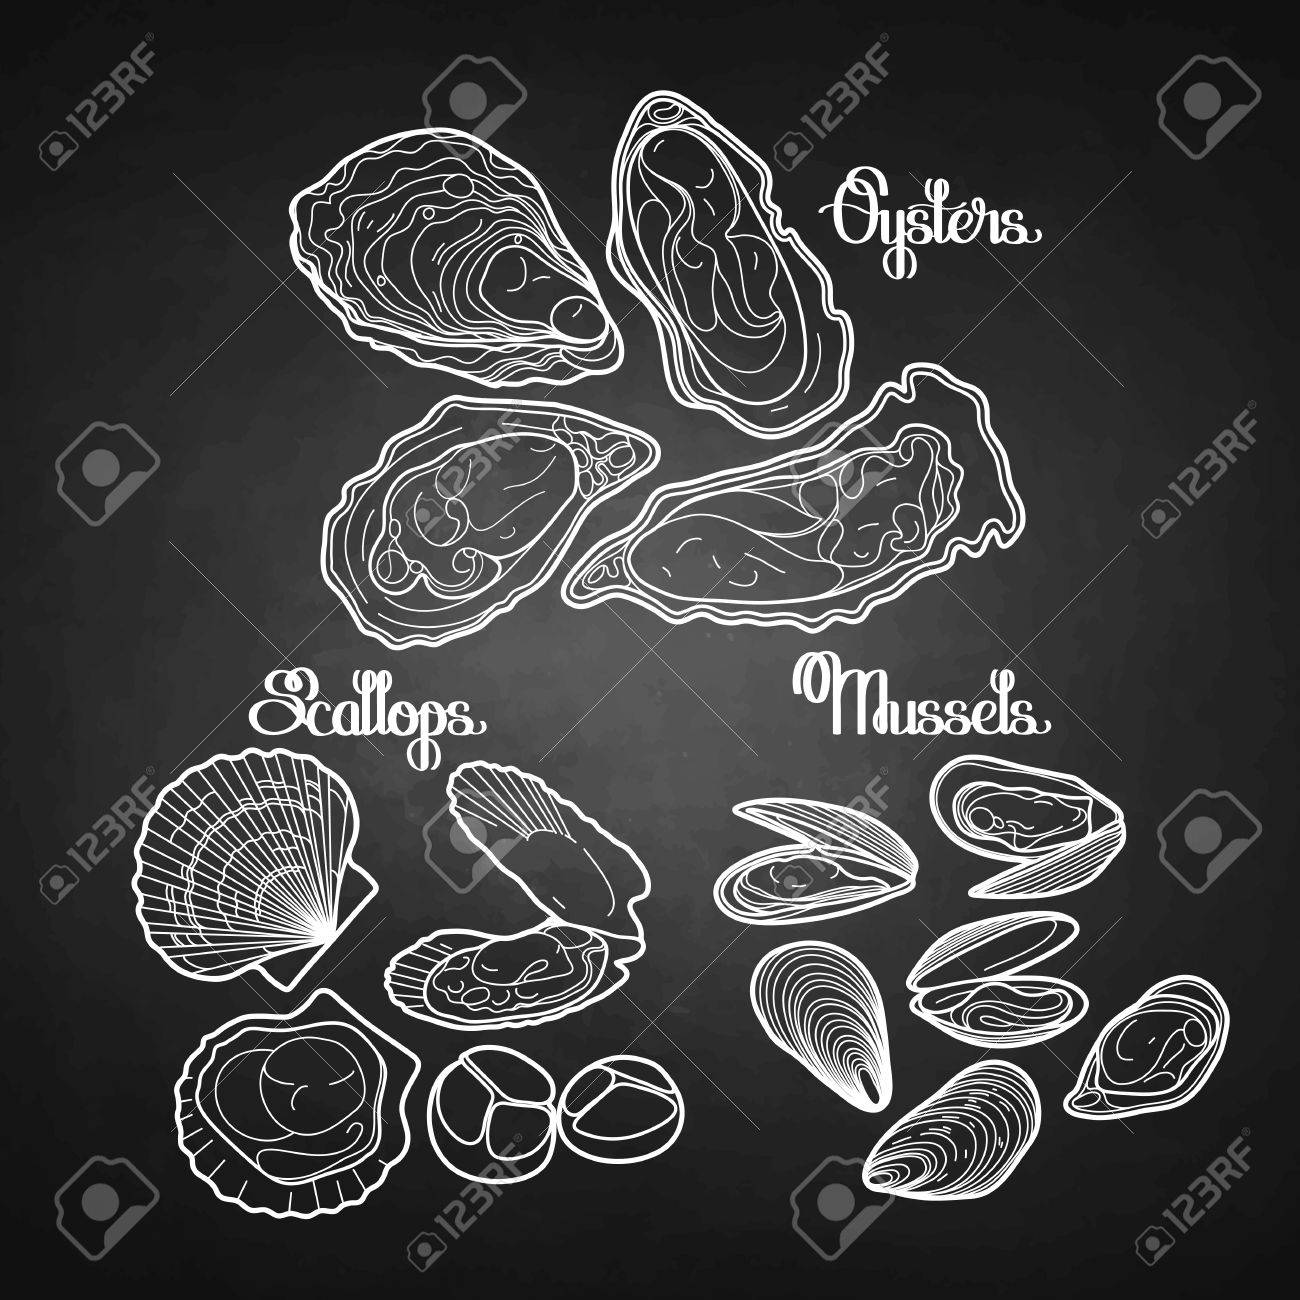 Graphic vector mussels, oysters and scallops drawn in line art style in black and white colors. Sea and ocean clams isolated on chalkboard. Seafood ingredients for menu design - 56287791